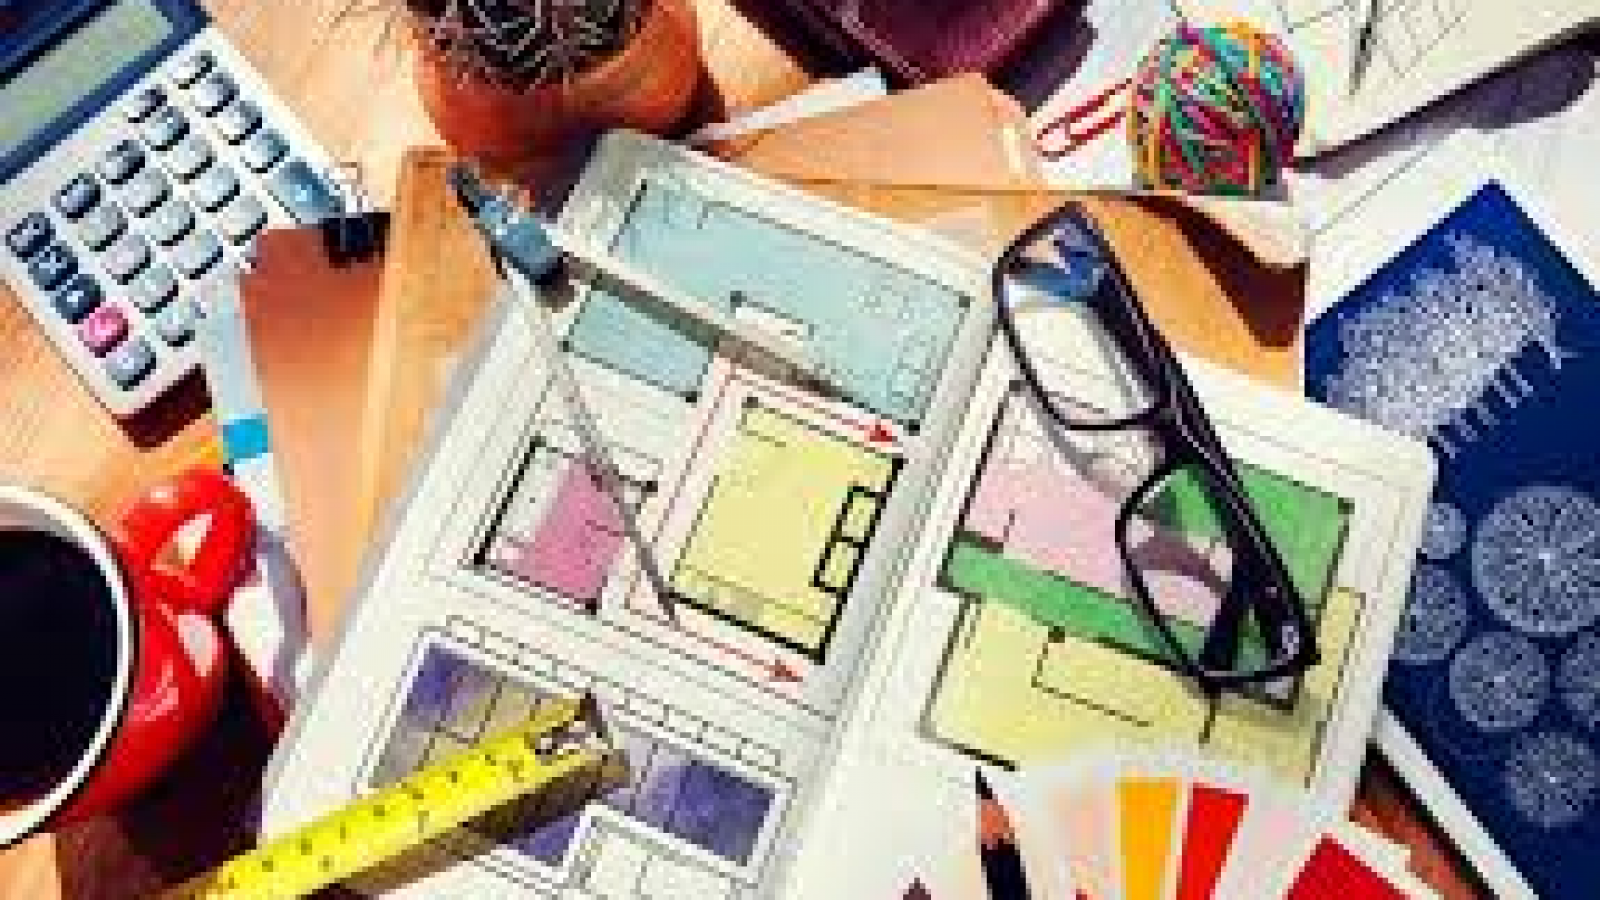 Tips For Buying a Property to Renovate2